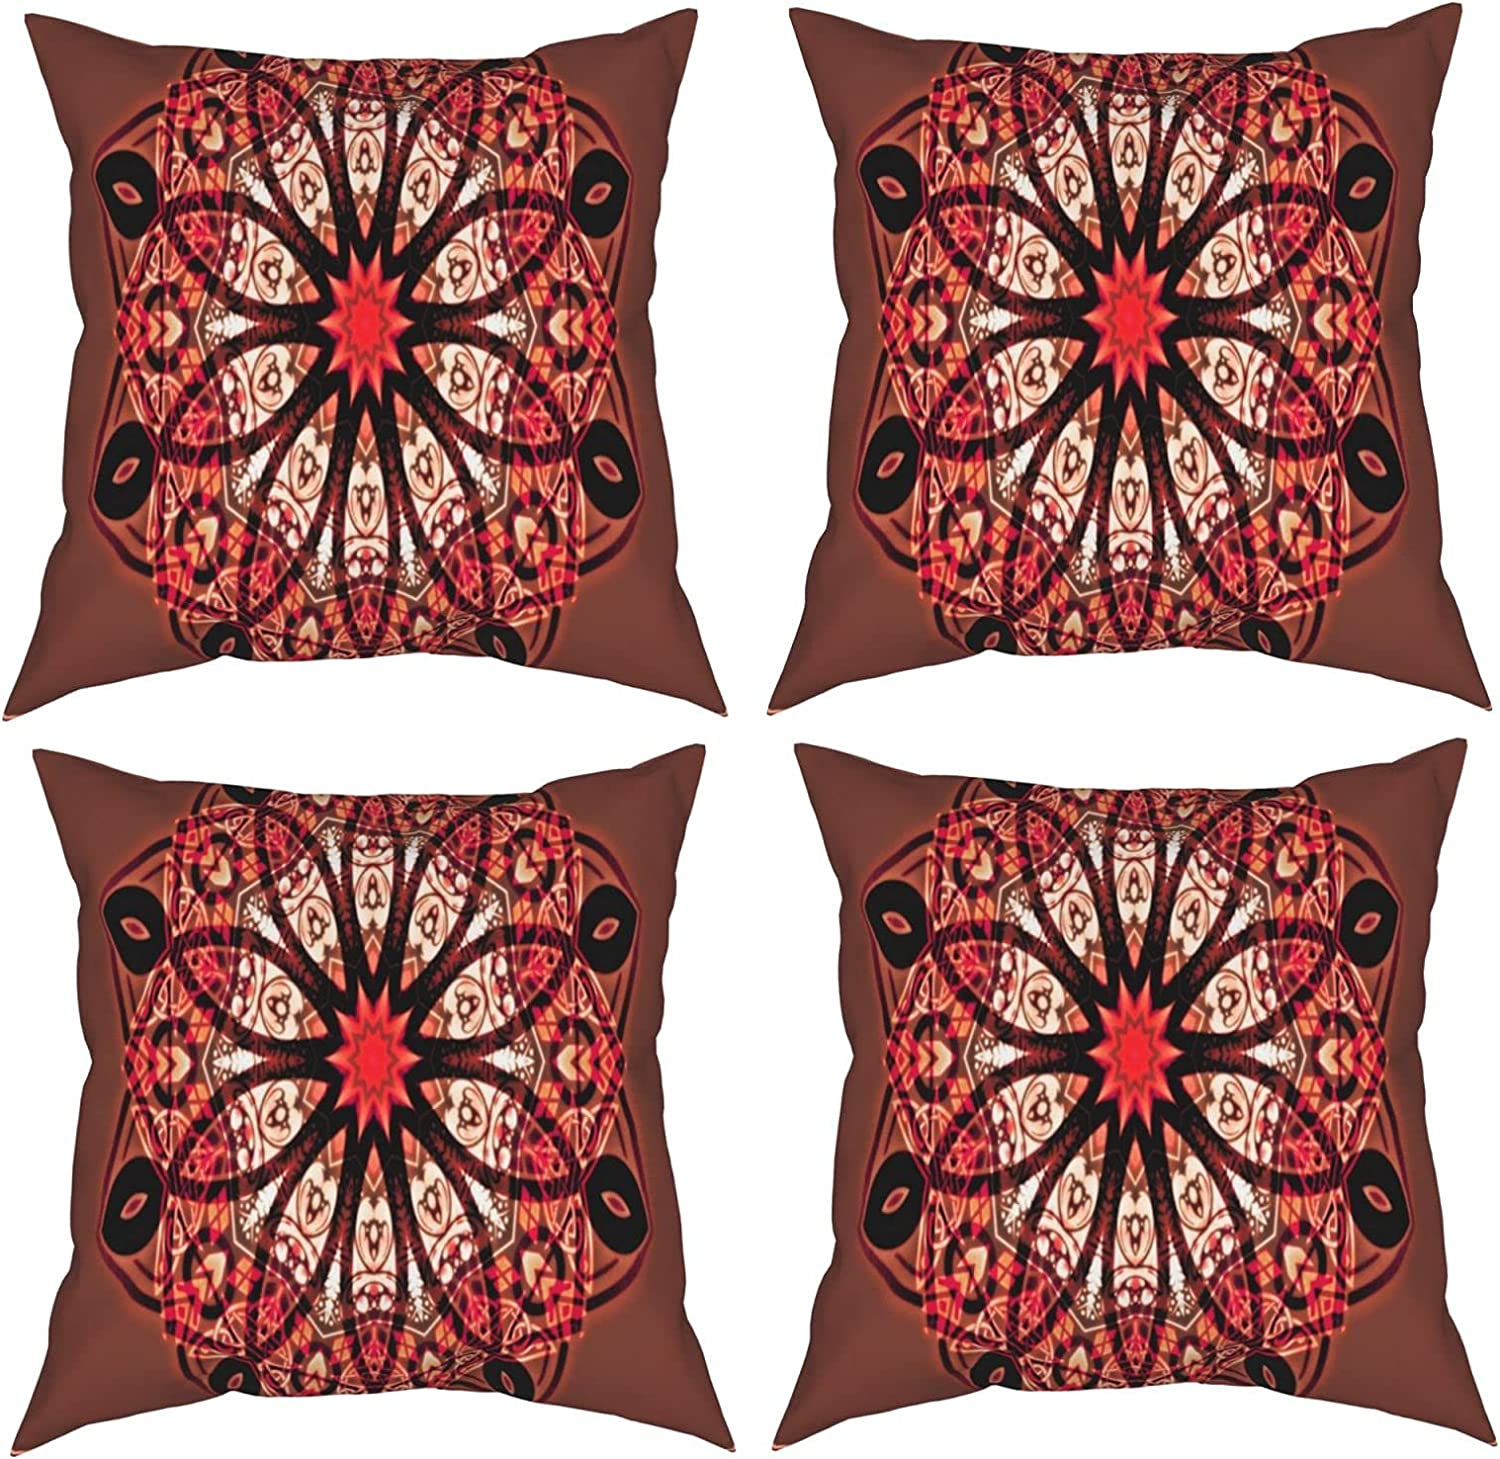 Yuracan 35% OFF Mandala Square Pillow Case is The for Used of Decoration Large-scale sale